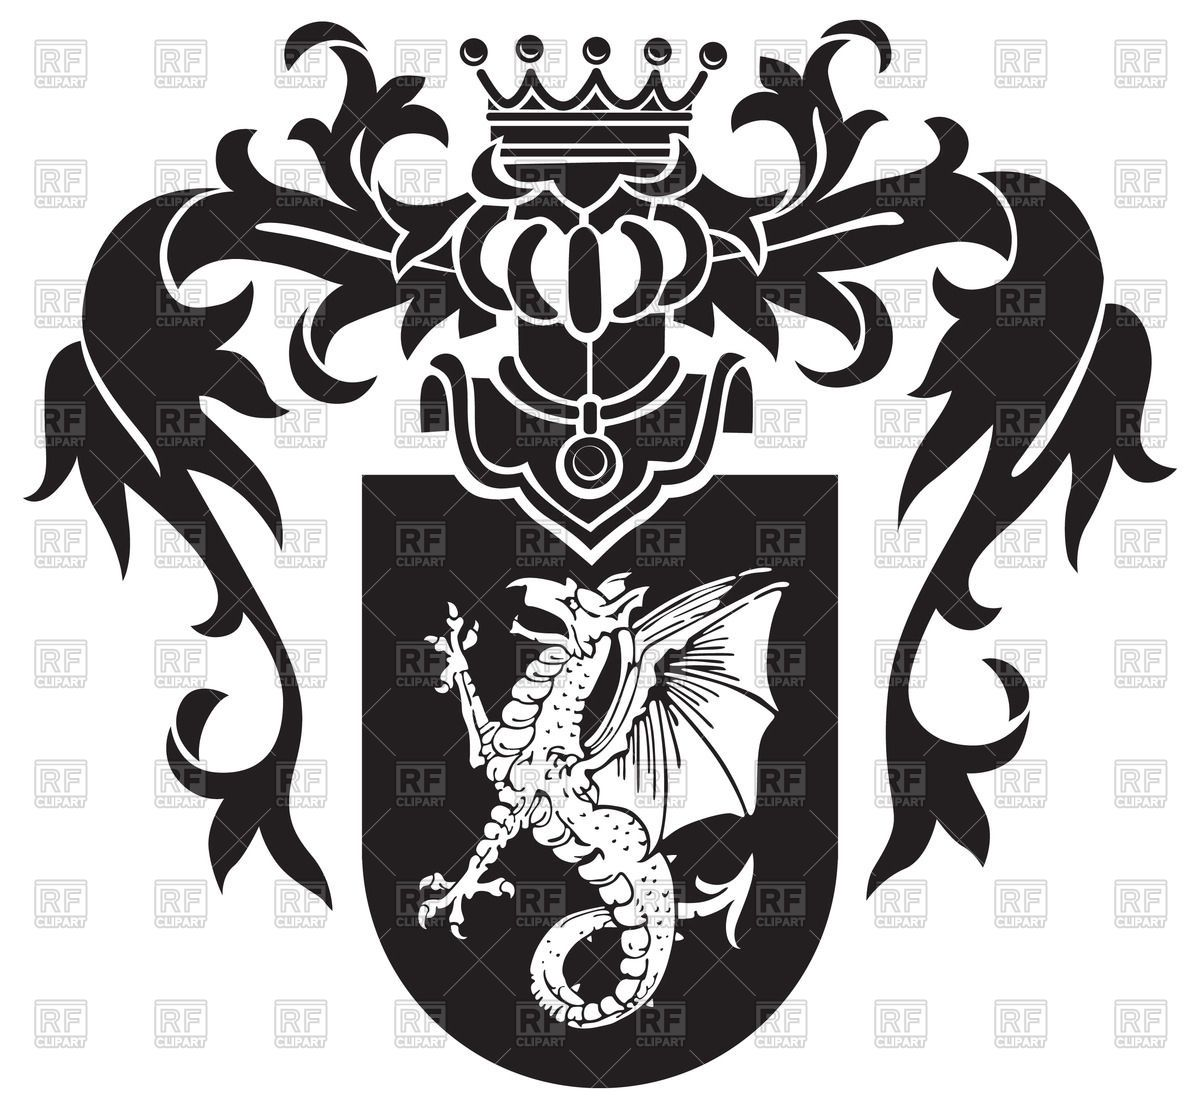 medieval heraldic coat of arms with wyvern on shield